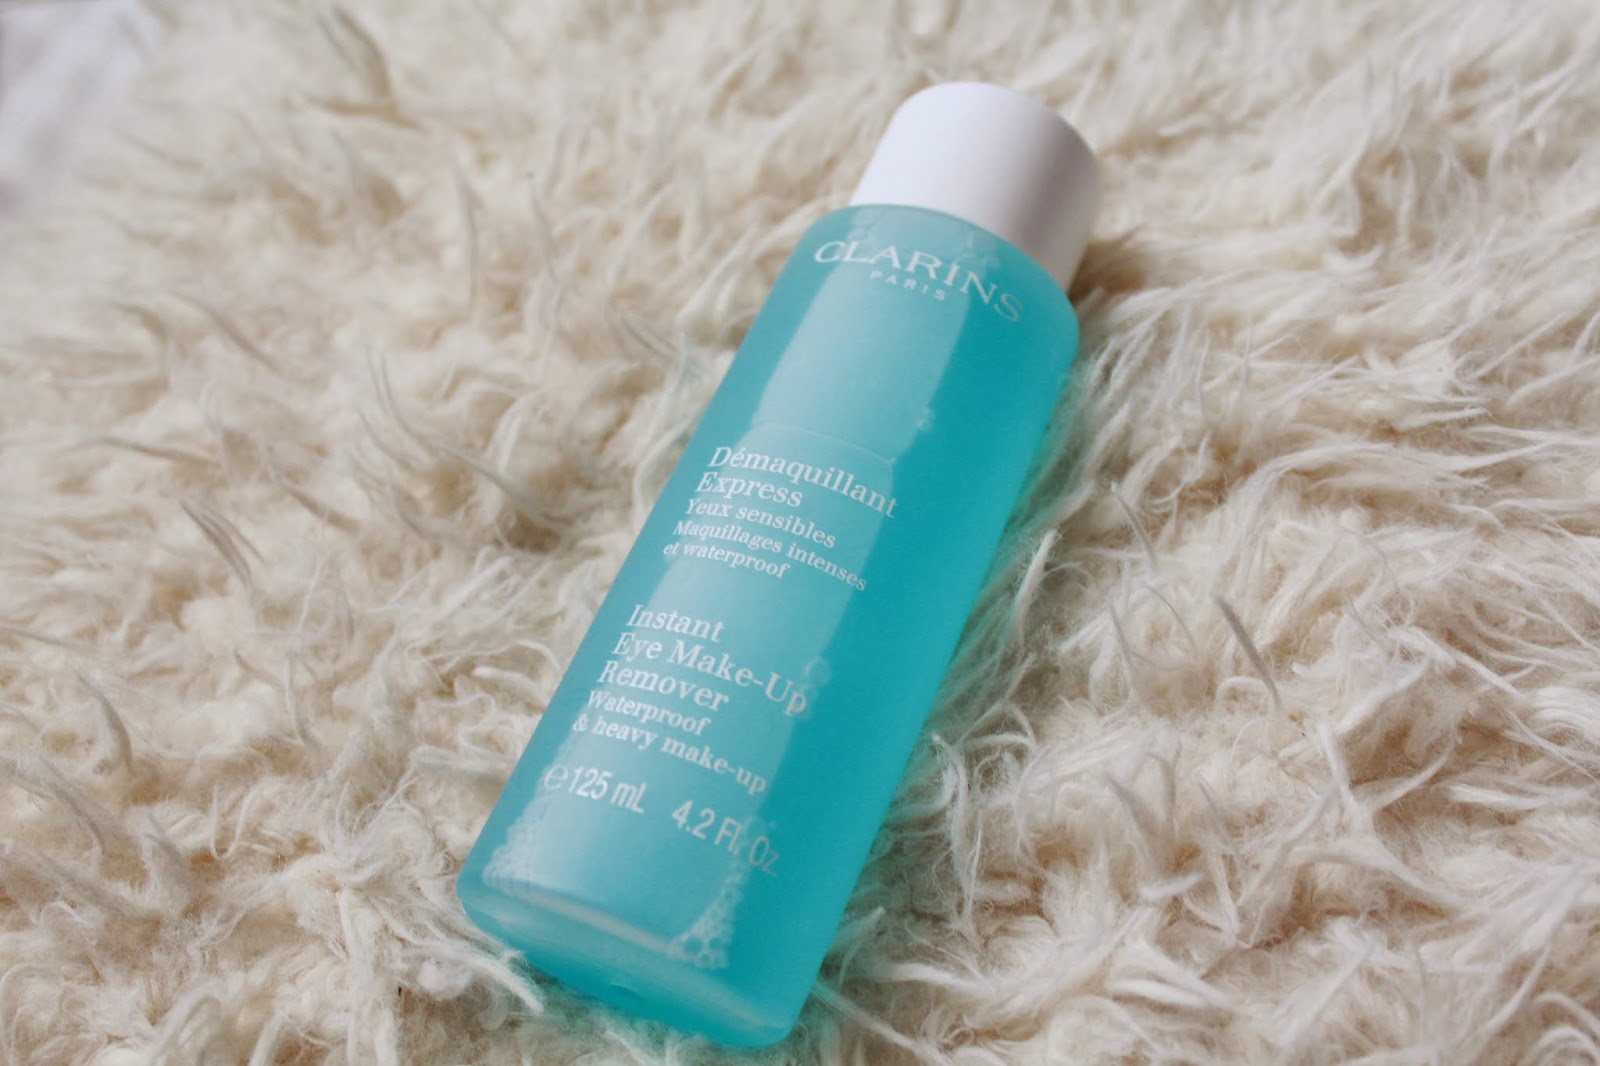 Clarins Instant Eye Make Up Remover